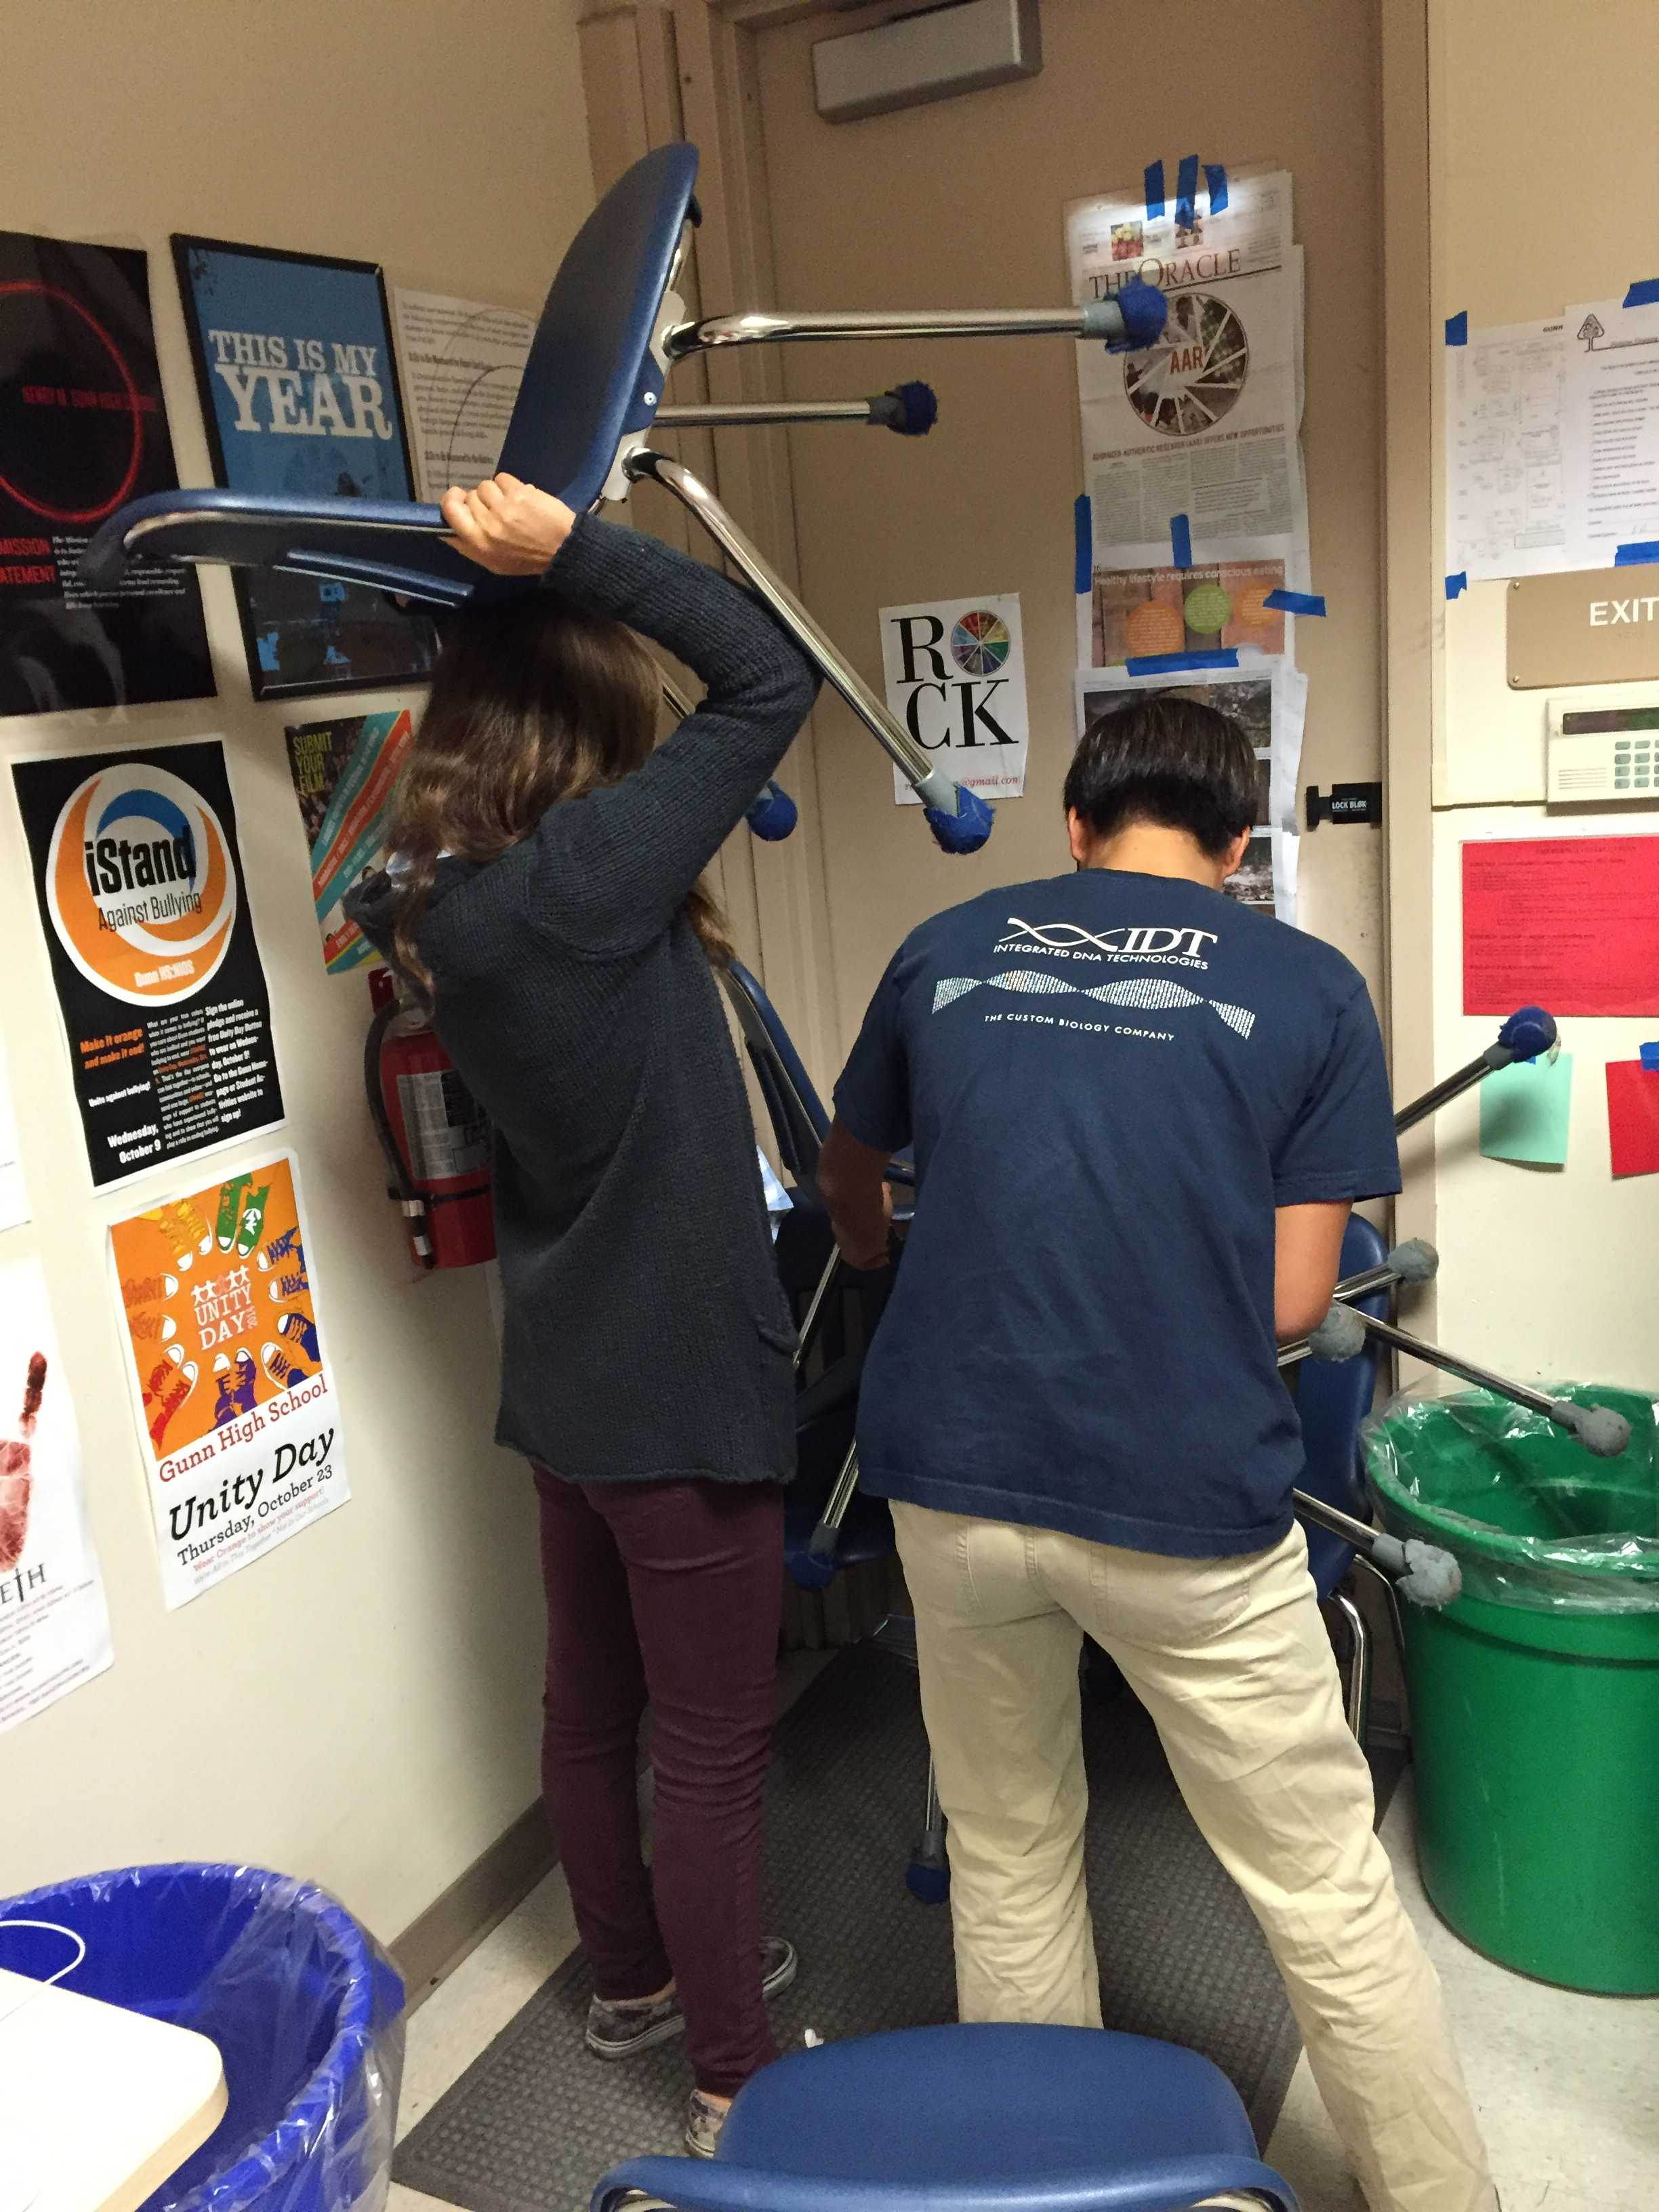 Students in L-6 work together to build an effective barricade with chairs during the Oct. 13 Code Red drill.